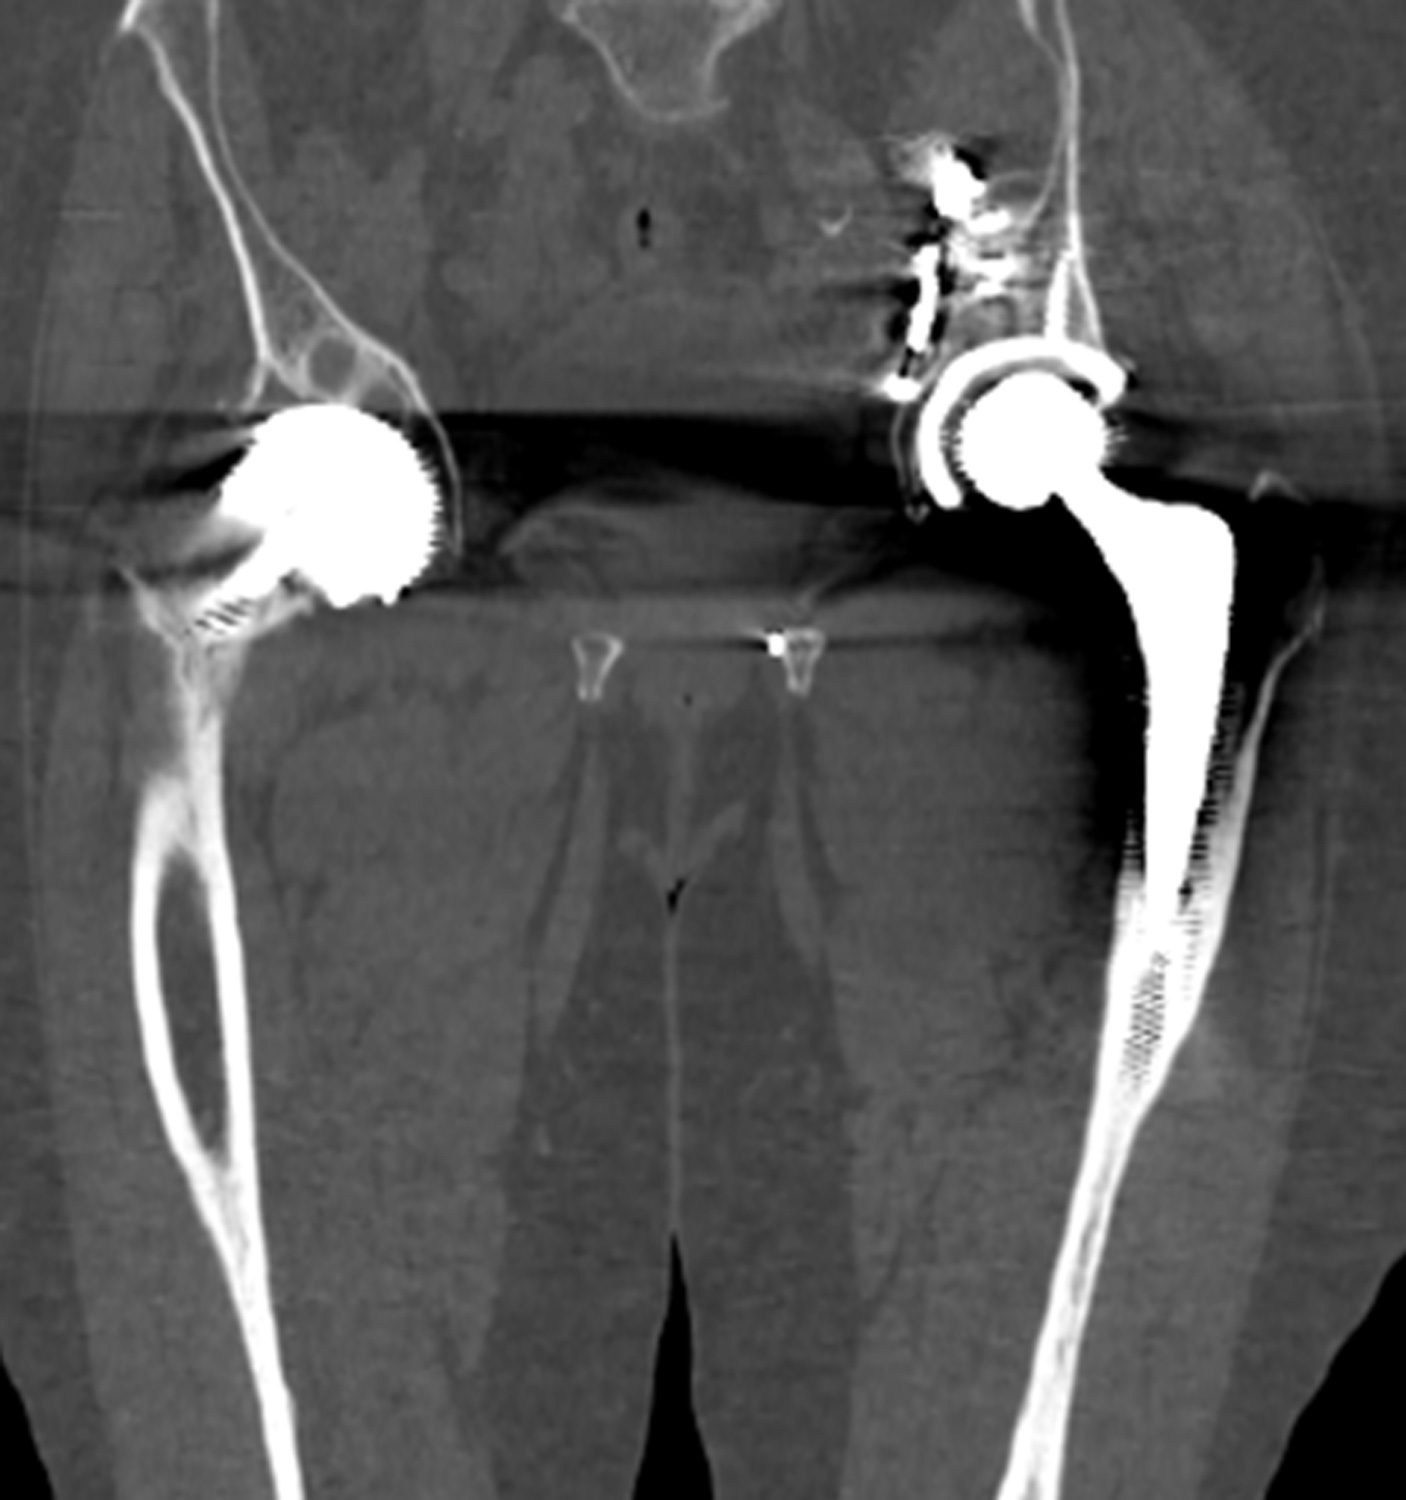 CT scans confirm significant osteolysis around the acetabular cup.